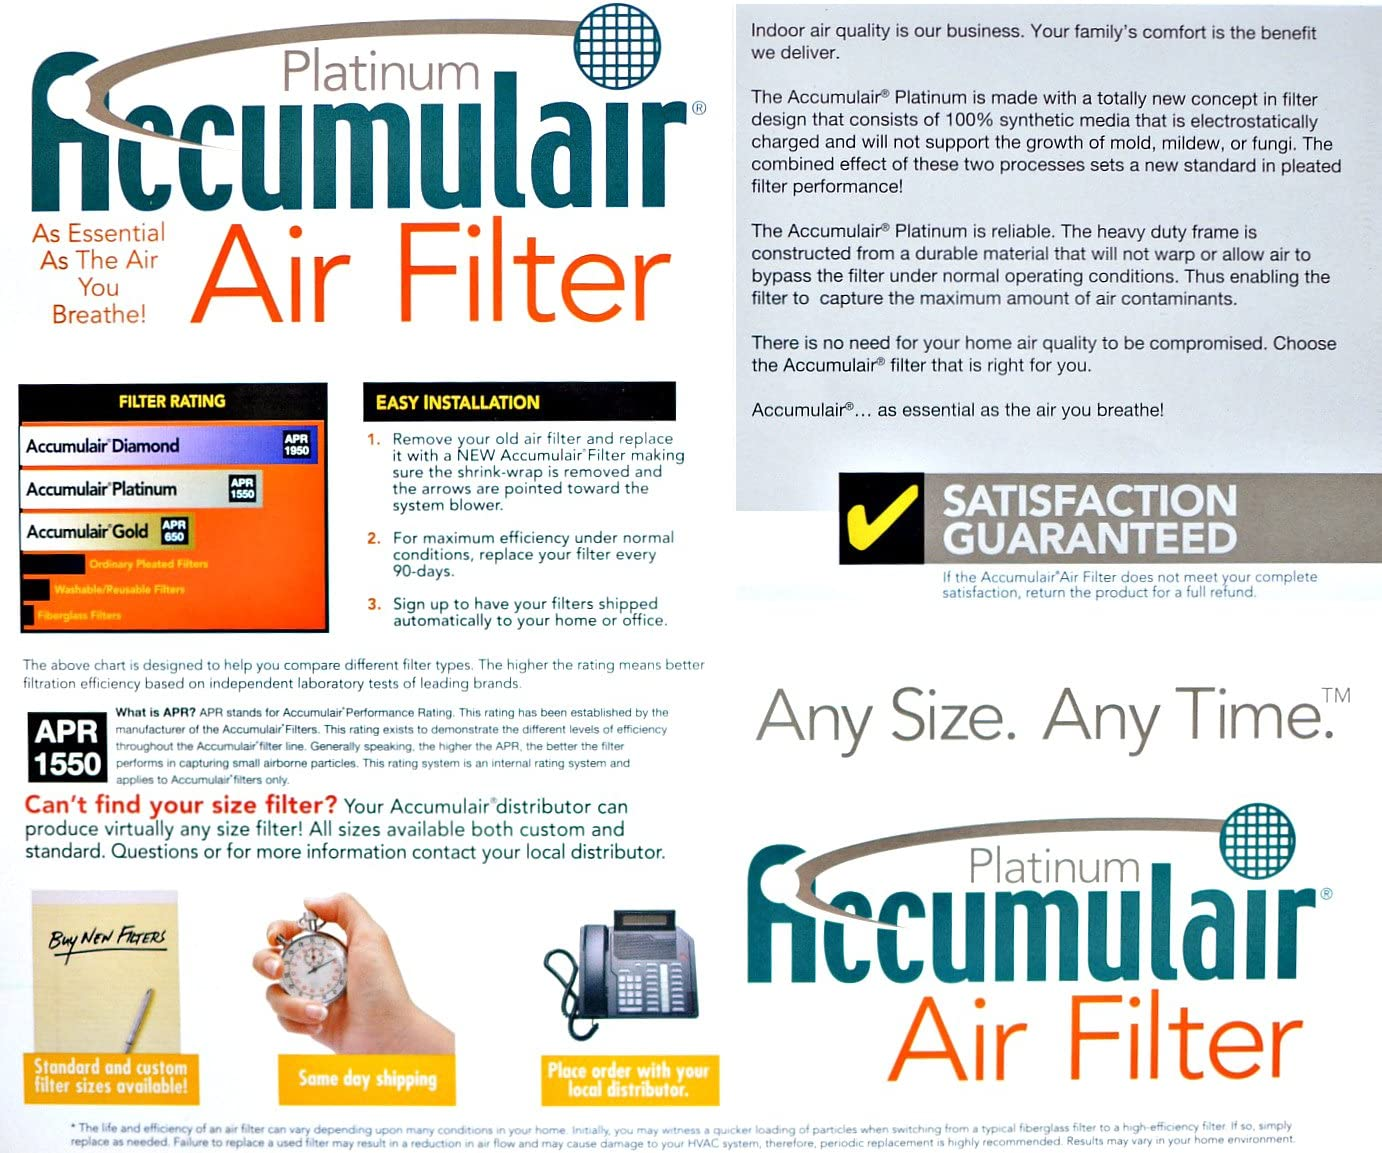 MERV 11 Air Filter//Furnace Filter 3 Pack Actual Size Accumulair Platinum 14x28x1